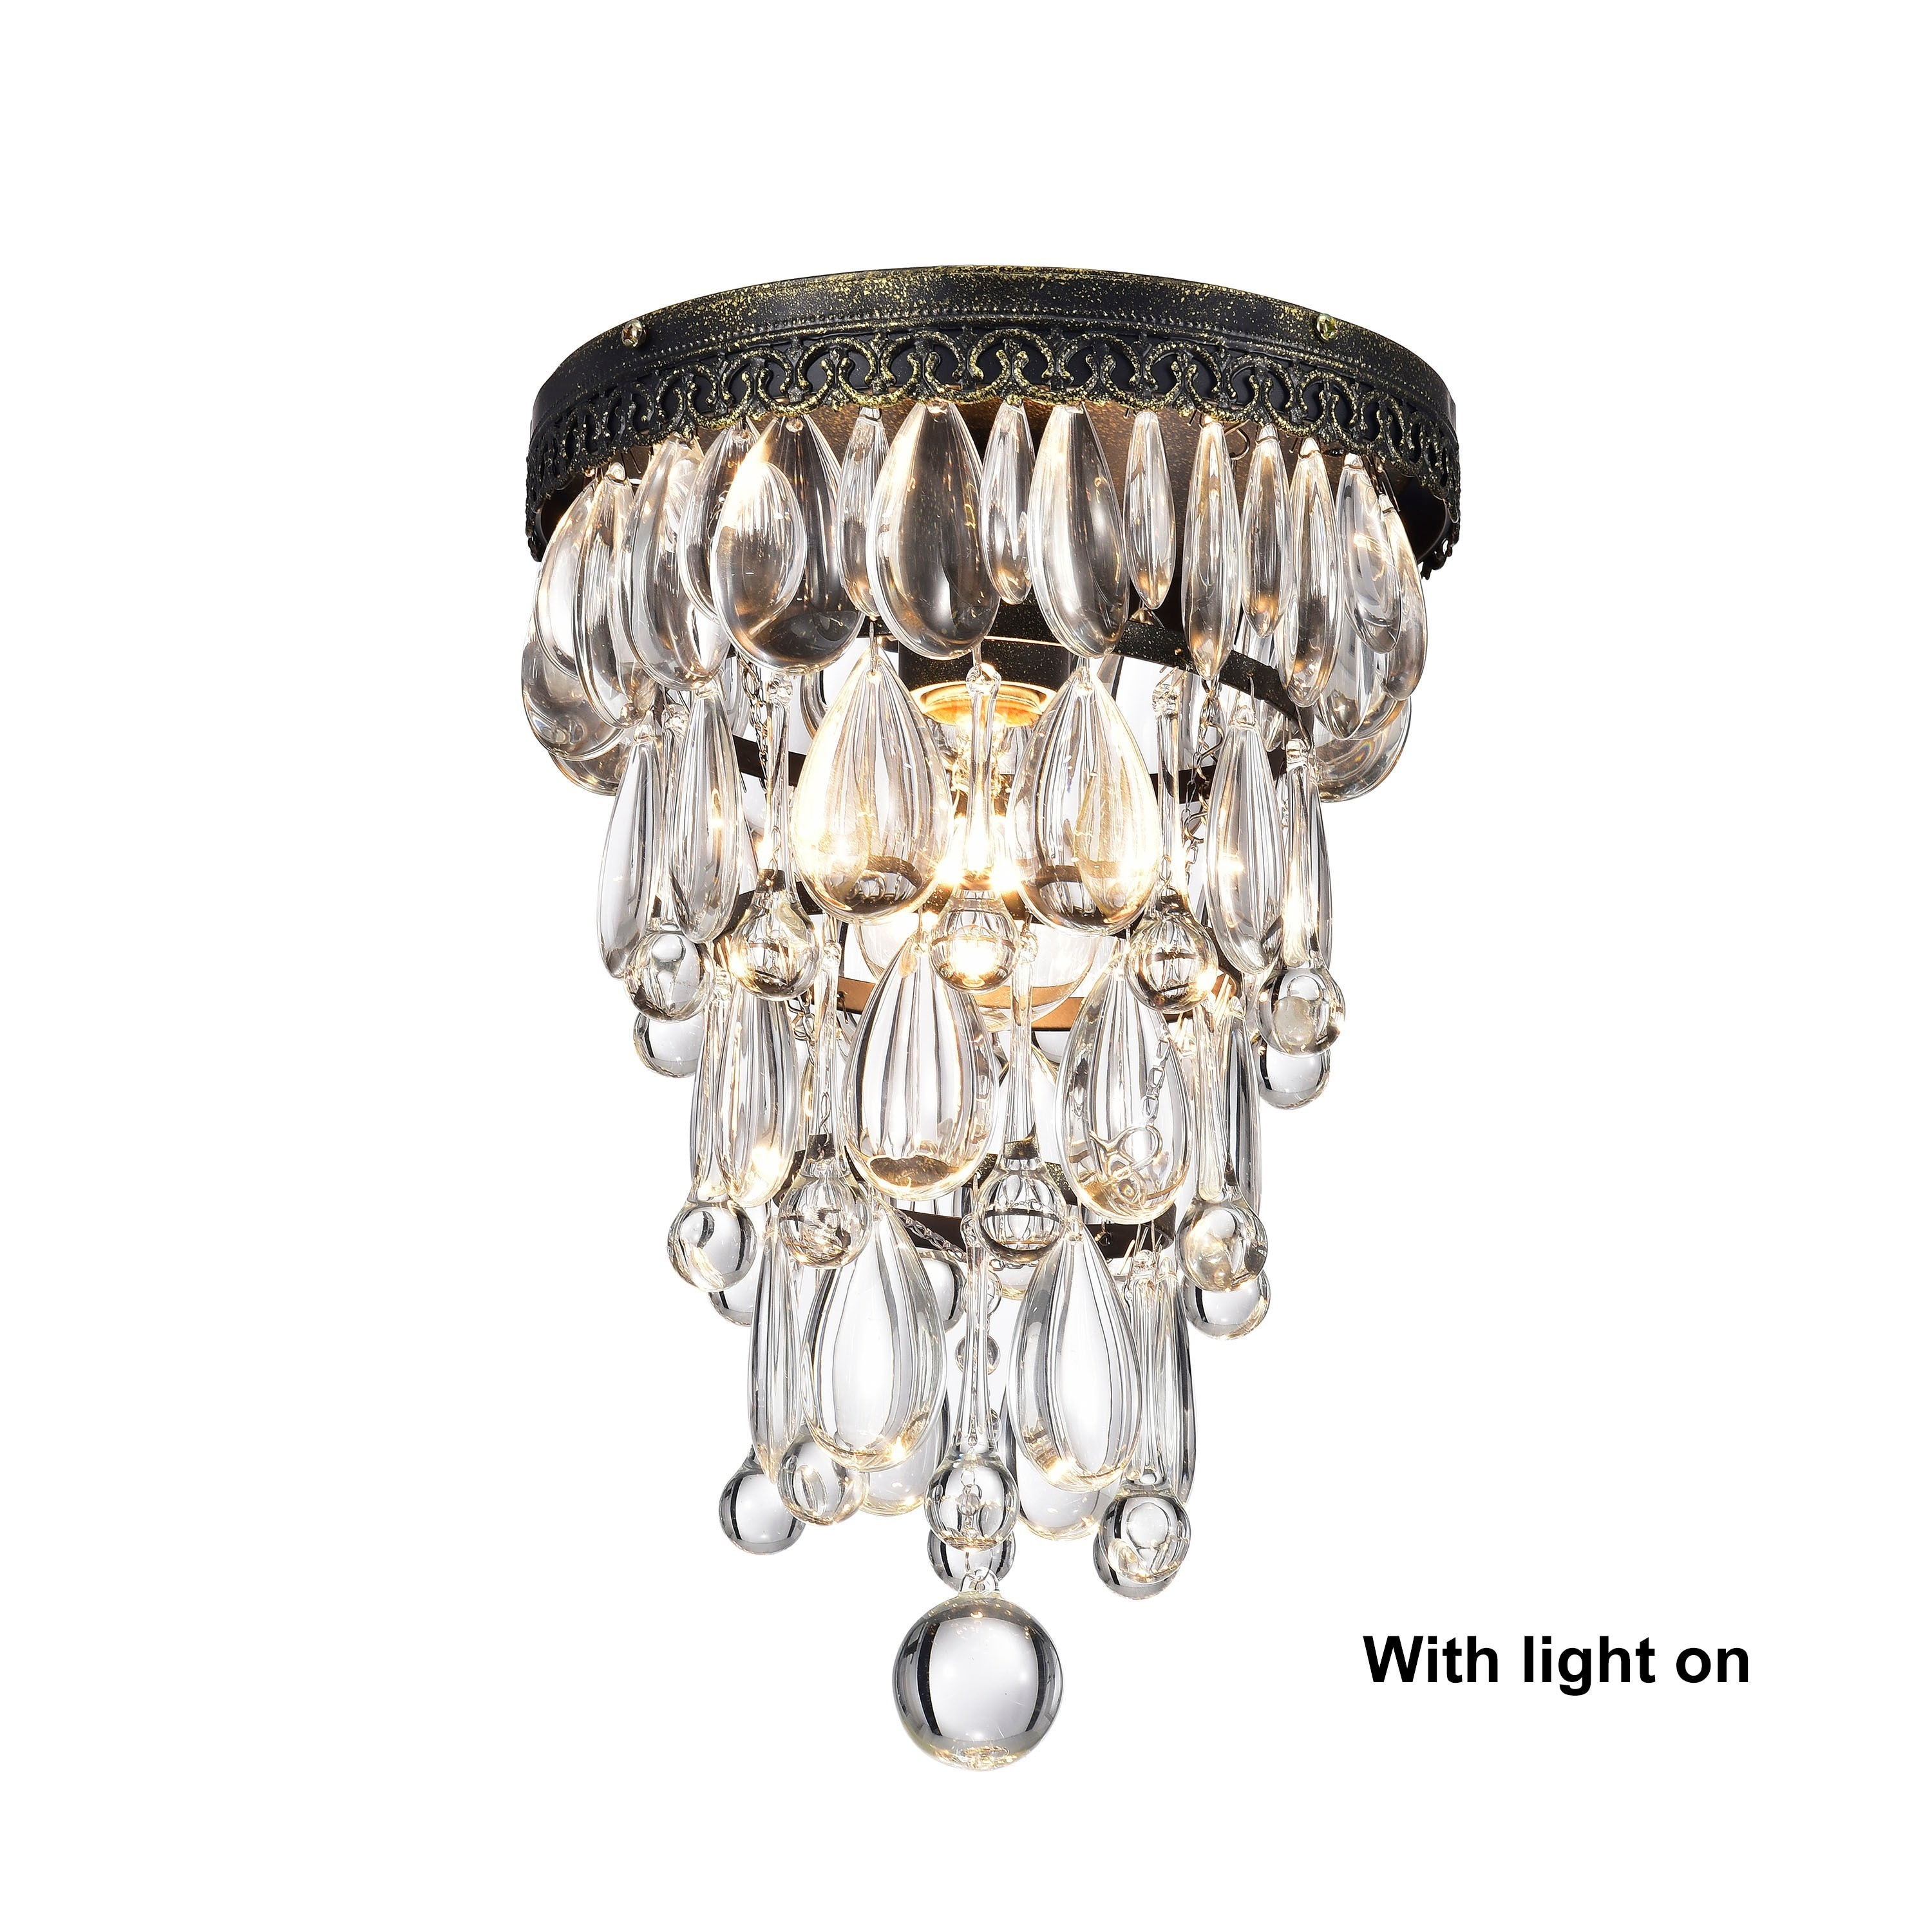 spiral chandeliers suspension mount flush lighting staircase lights stair drop modern hanging item chandelier for in from long ceiling high light rain crystal fixture